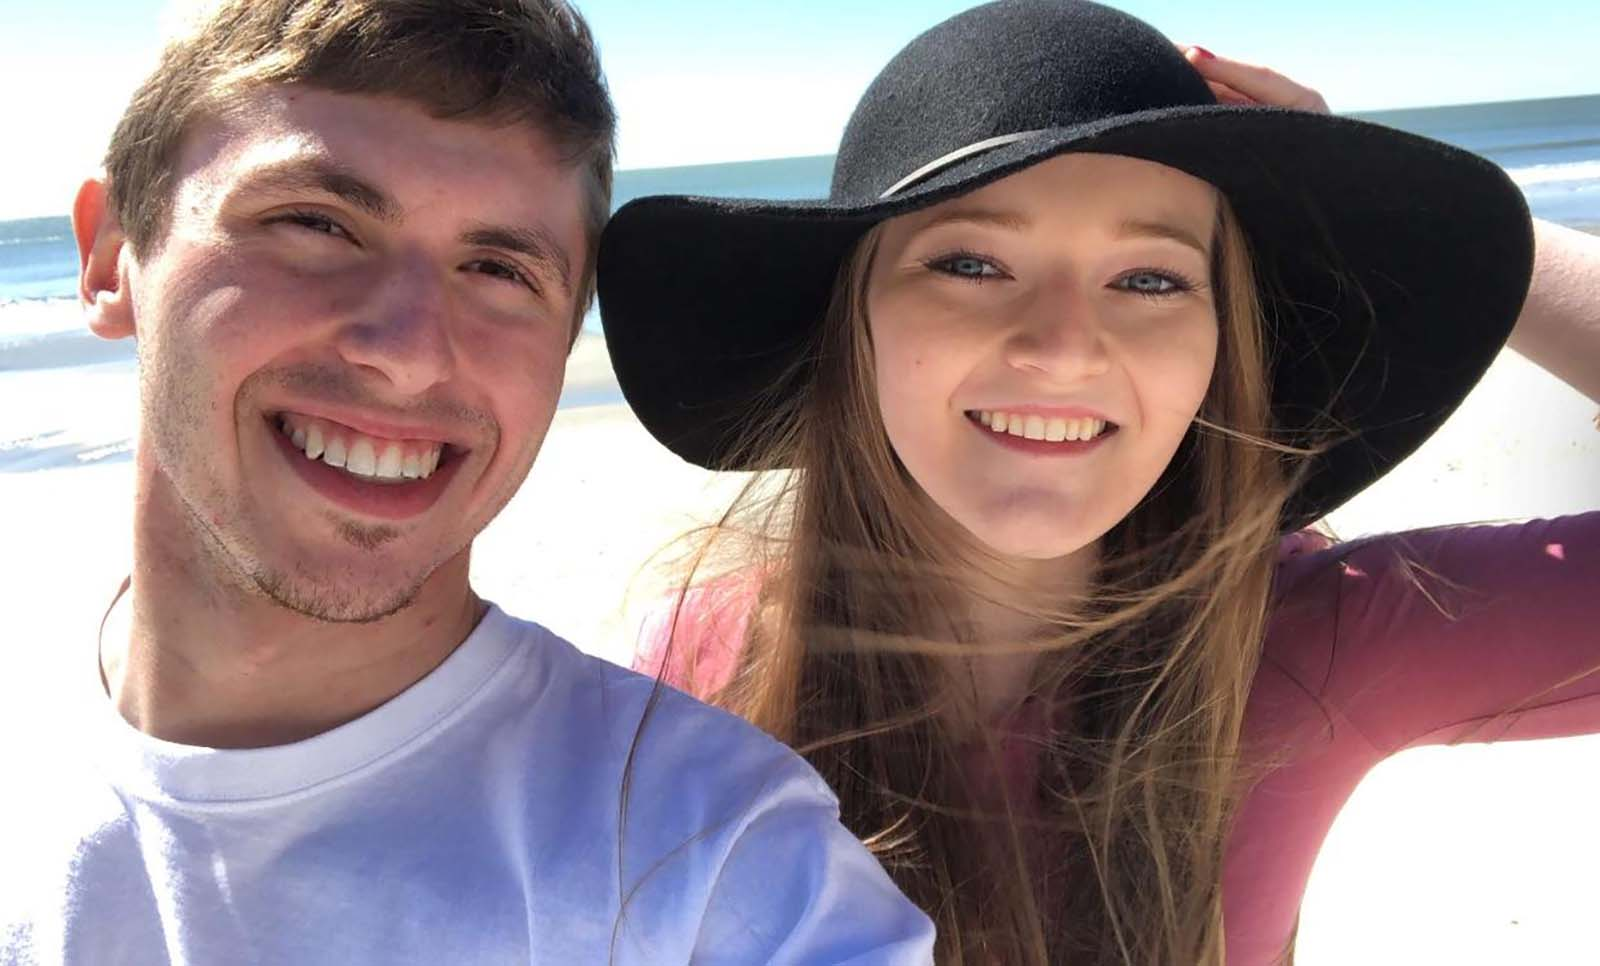 Young couple selfie on beach